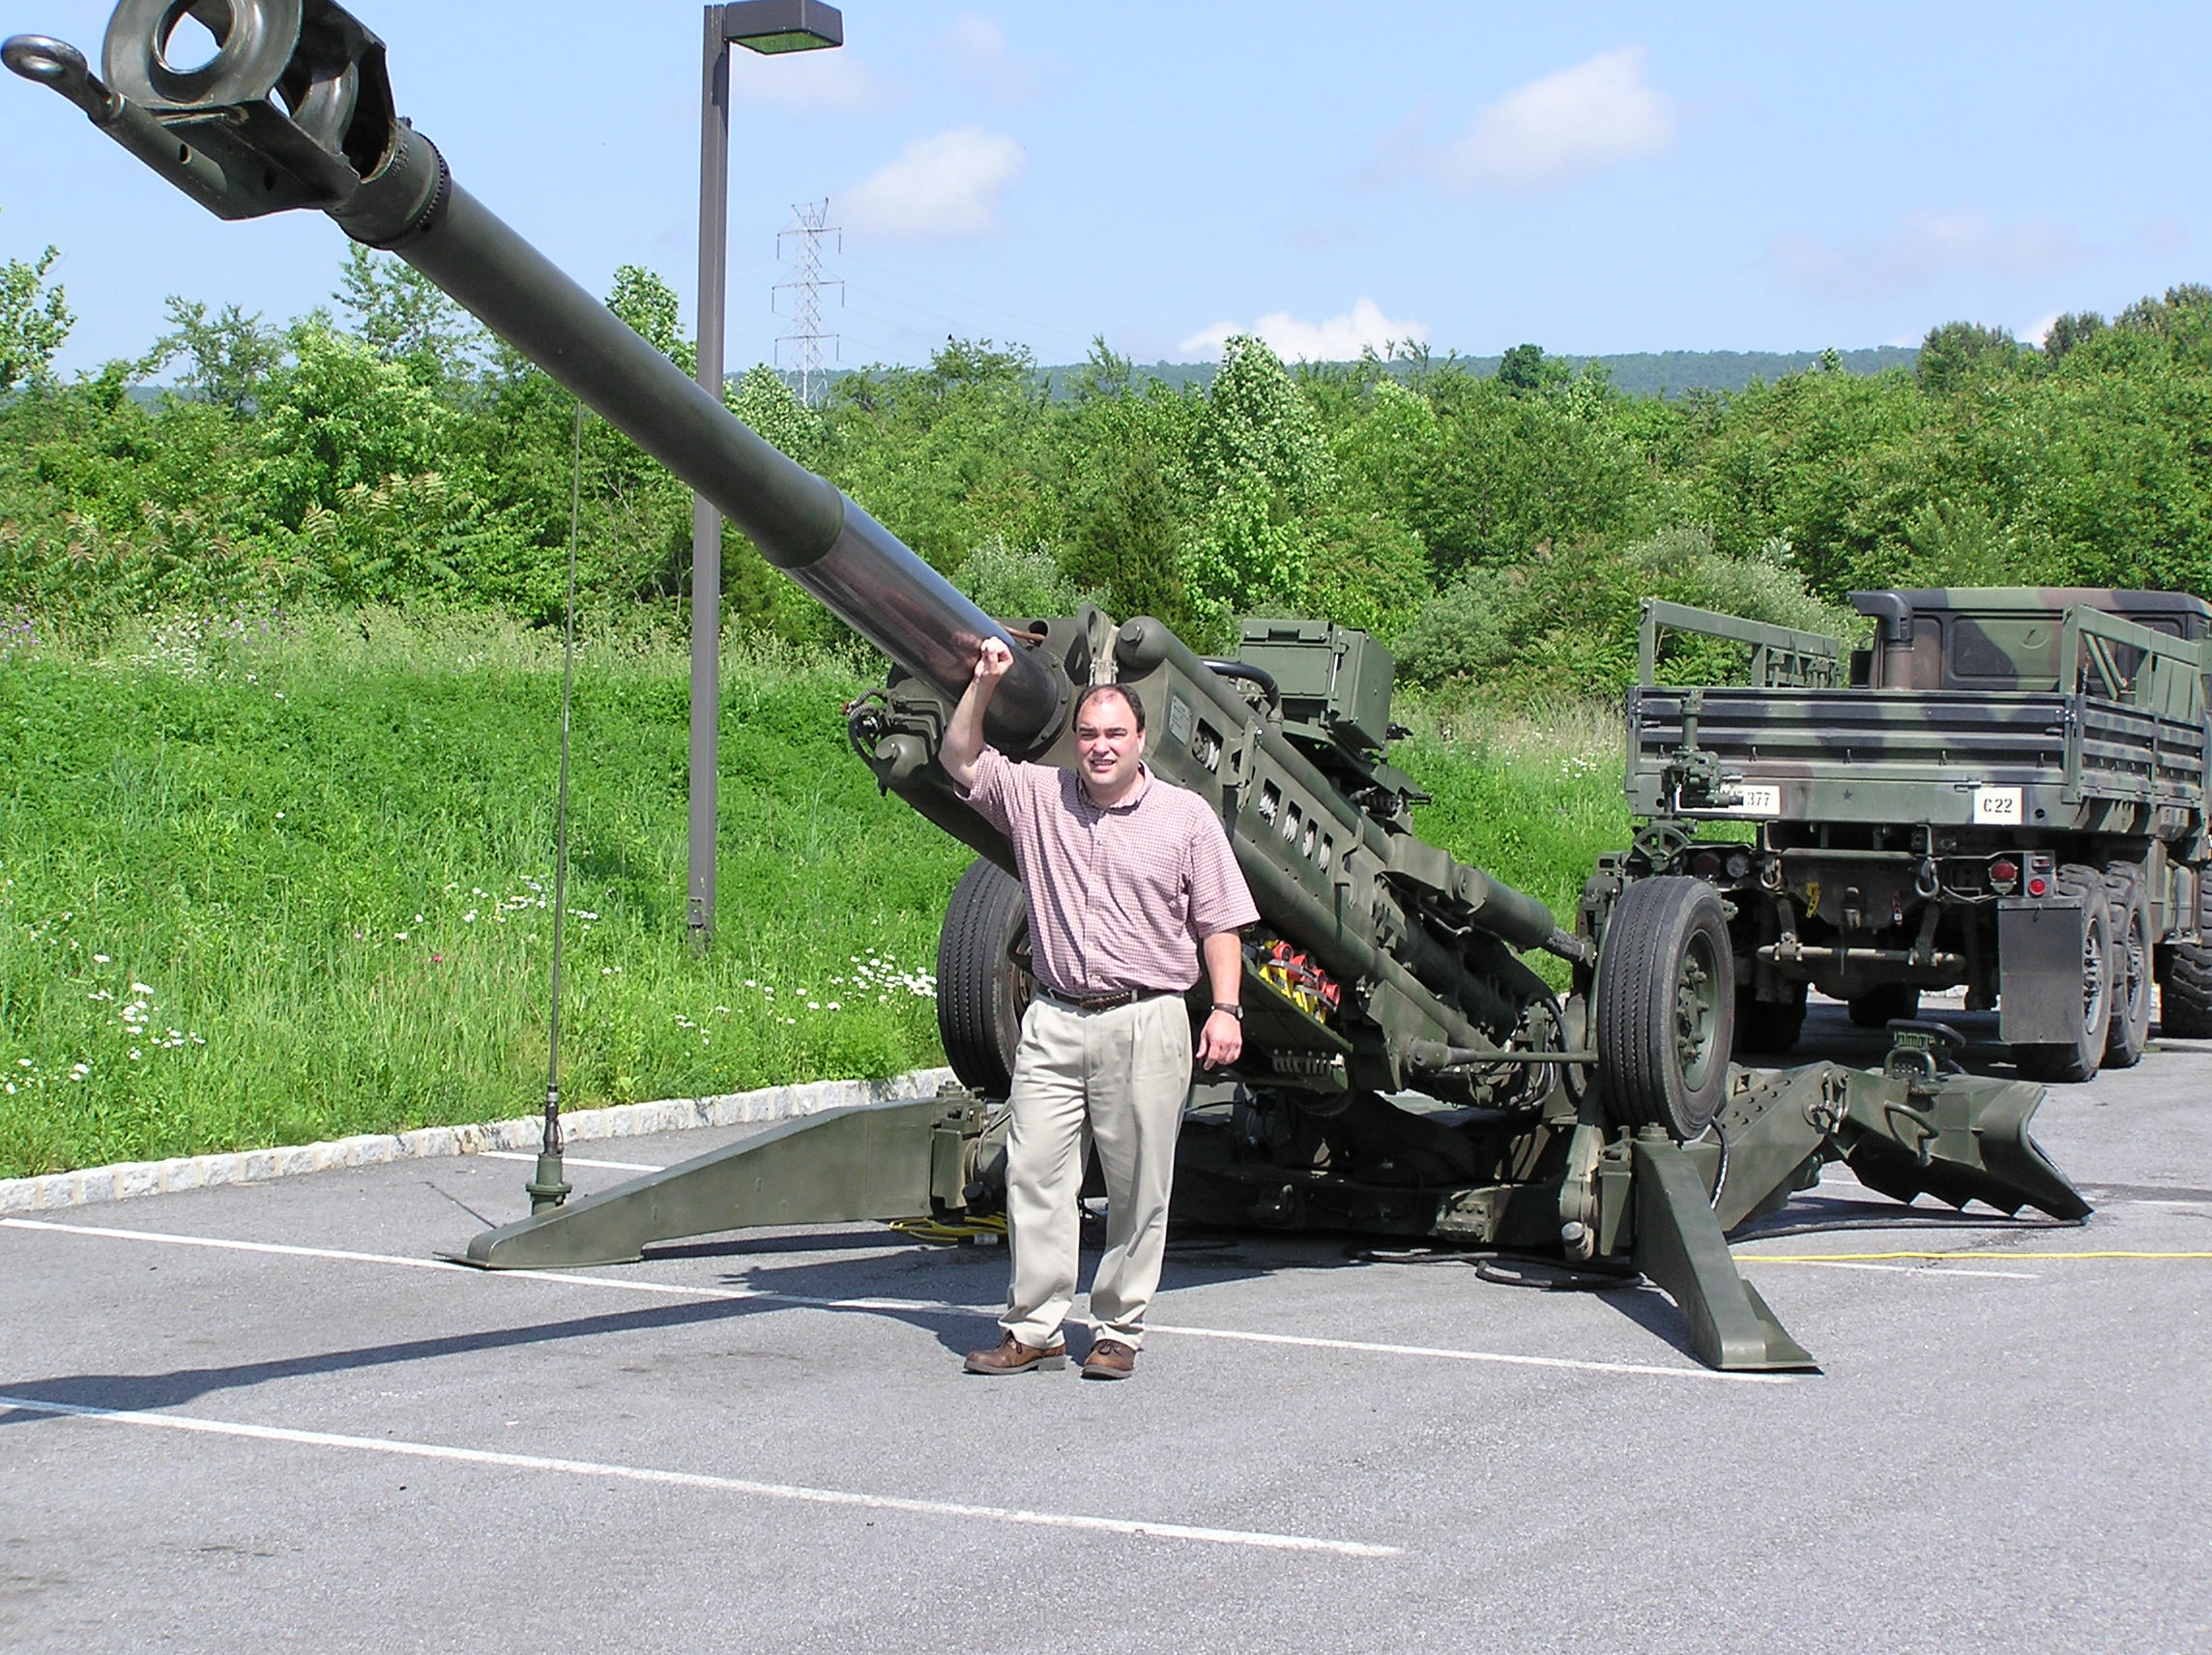 An M777 in the Imperial Machine & Tool Co. parking lot! We hosted an open house and the U.S. Army was gracious enough to bring an M777 to display for our guests.